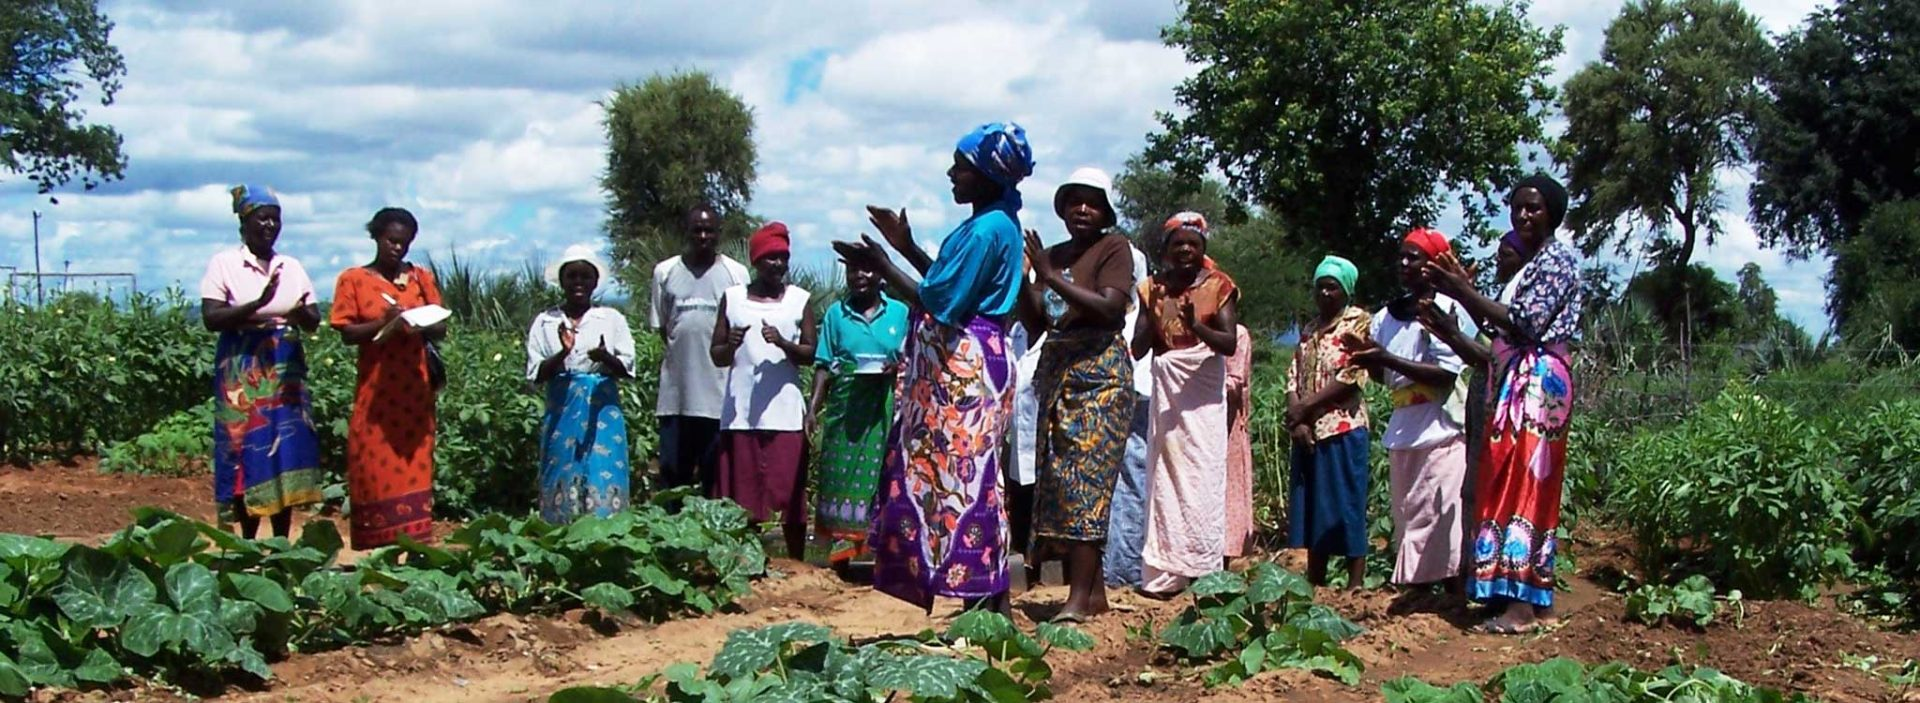 A group of women at an Action Against Hunger project in Zimbabwe.